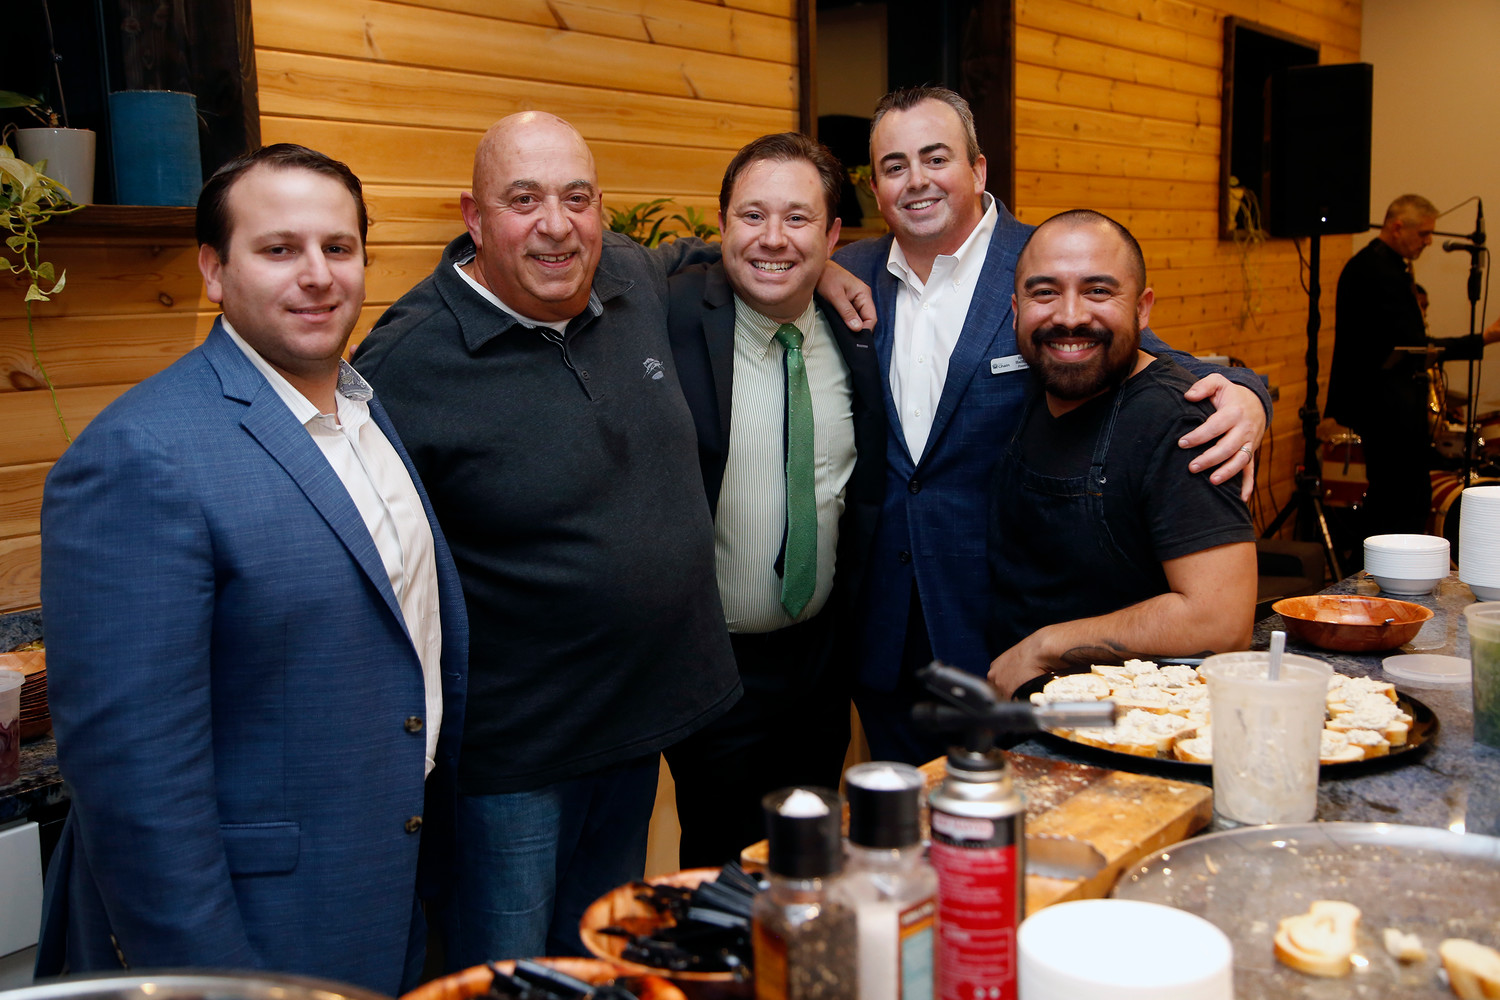 The Chain co-founder Garrett Guttenberg, left, Rob Blau, president of the Long Beach Soup Kitchen, Oceanside resident and organizer Andrew Berman, The Chain co-founder Brian Hallinan and Chef Ronnie Jaramillo at a Jan. 11 fundraiser benefitting the Long Beach Soup Kitchen.